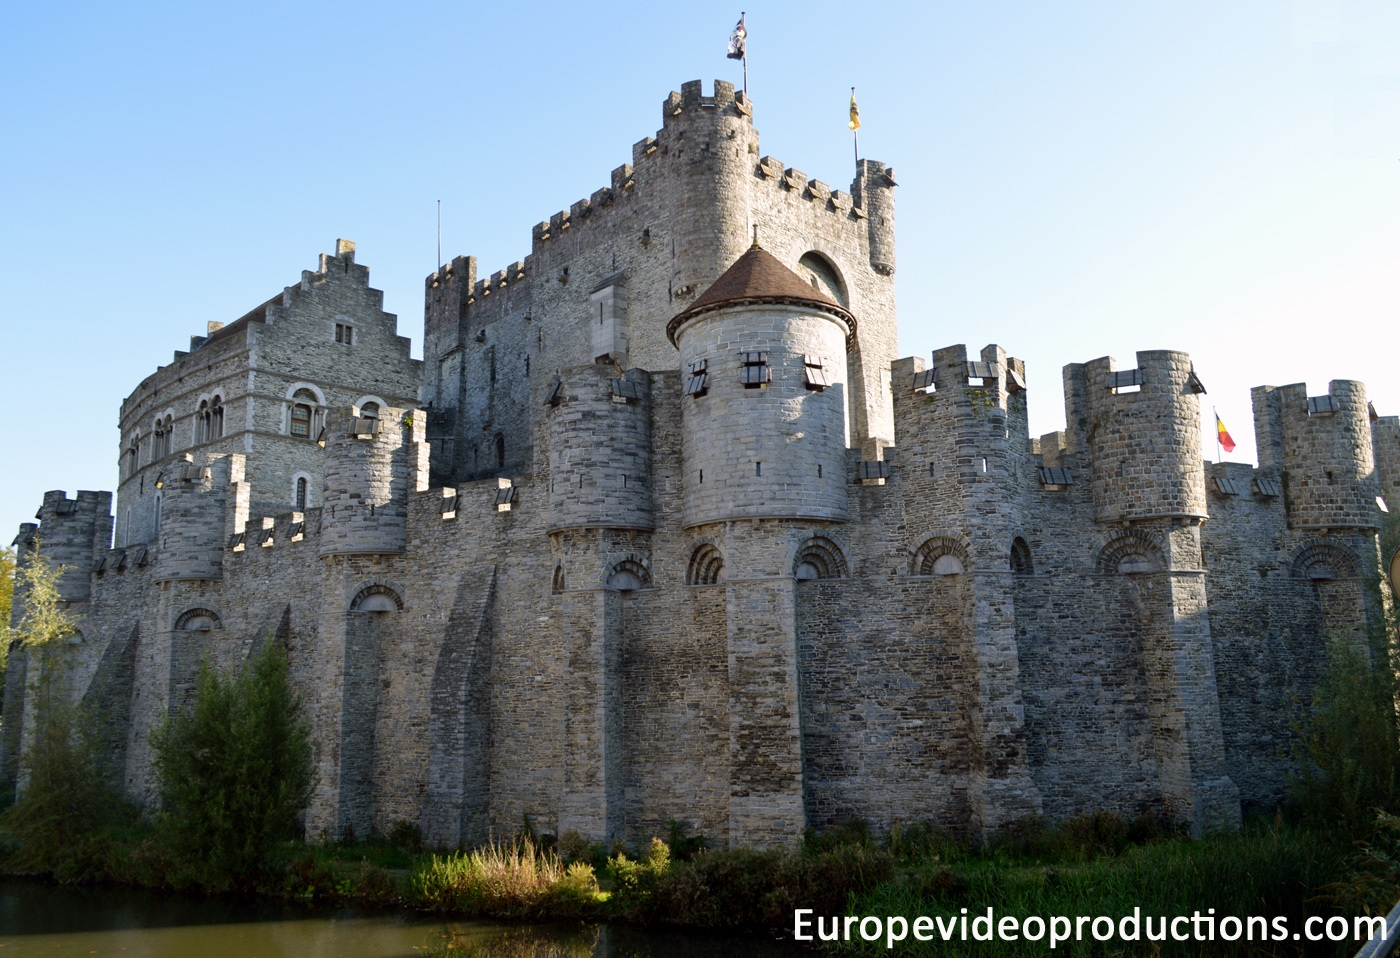 The Castle of the Counts in Ghent in Franders in Belgium